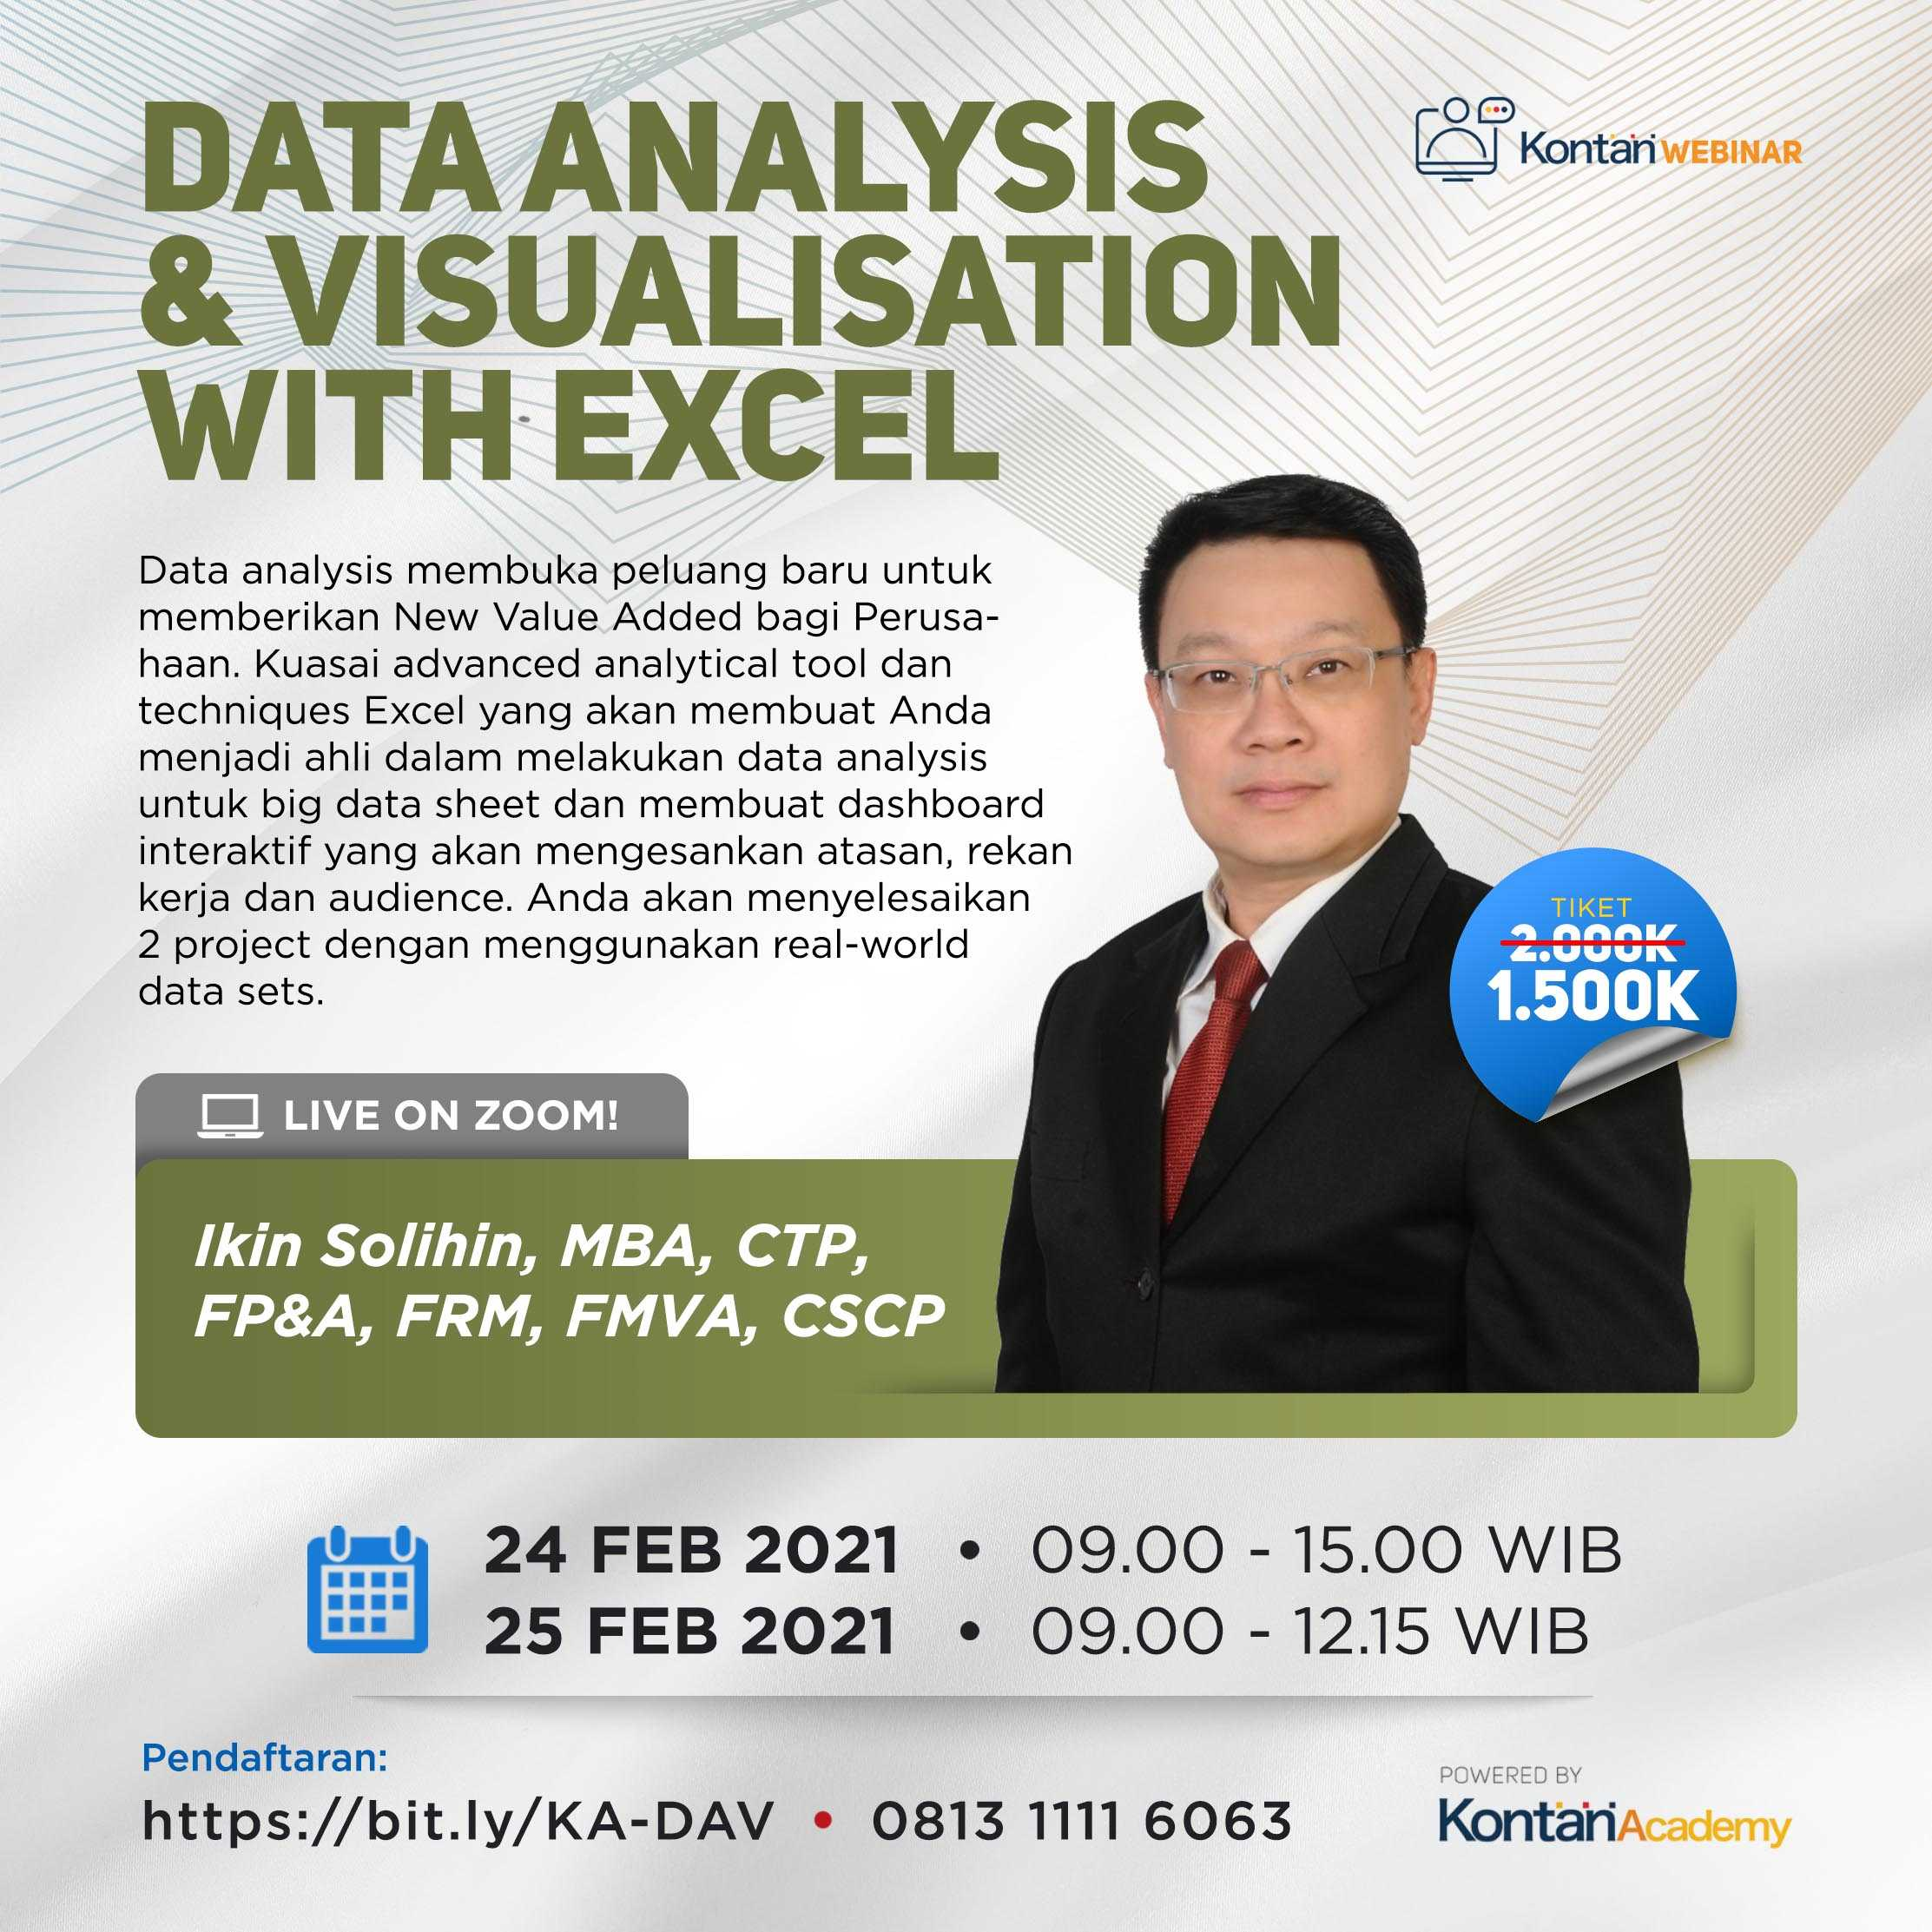 Data Analysis & Visualisation with Excel